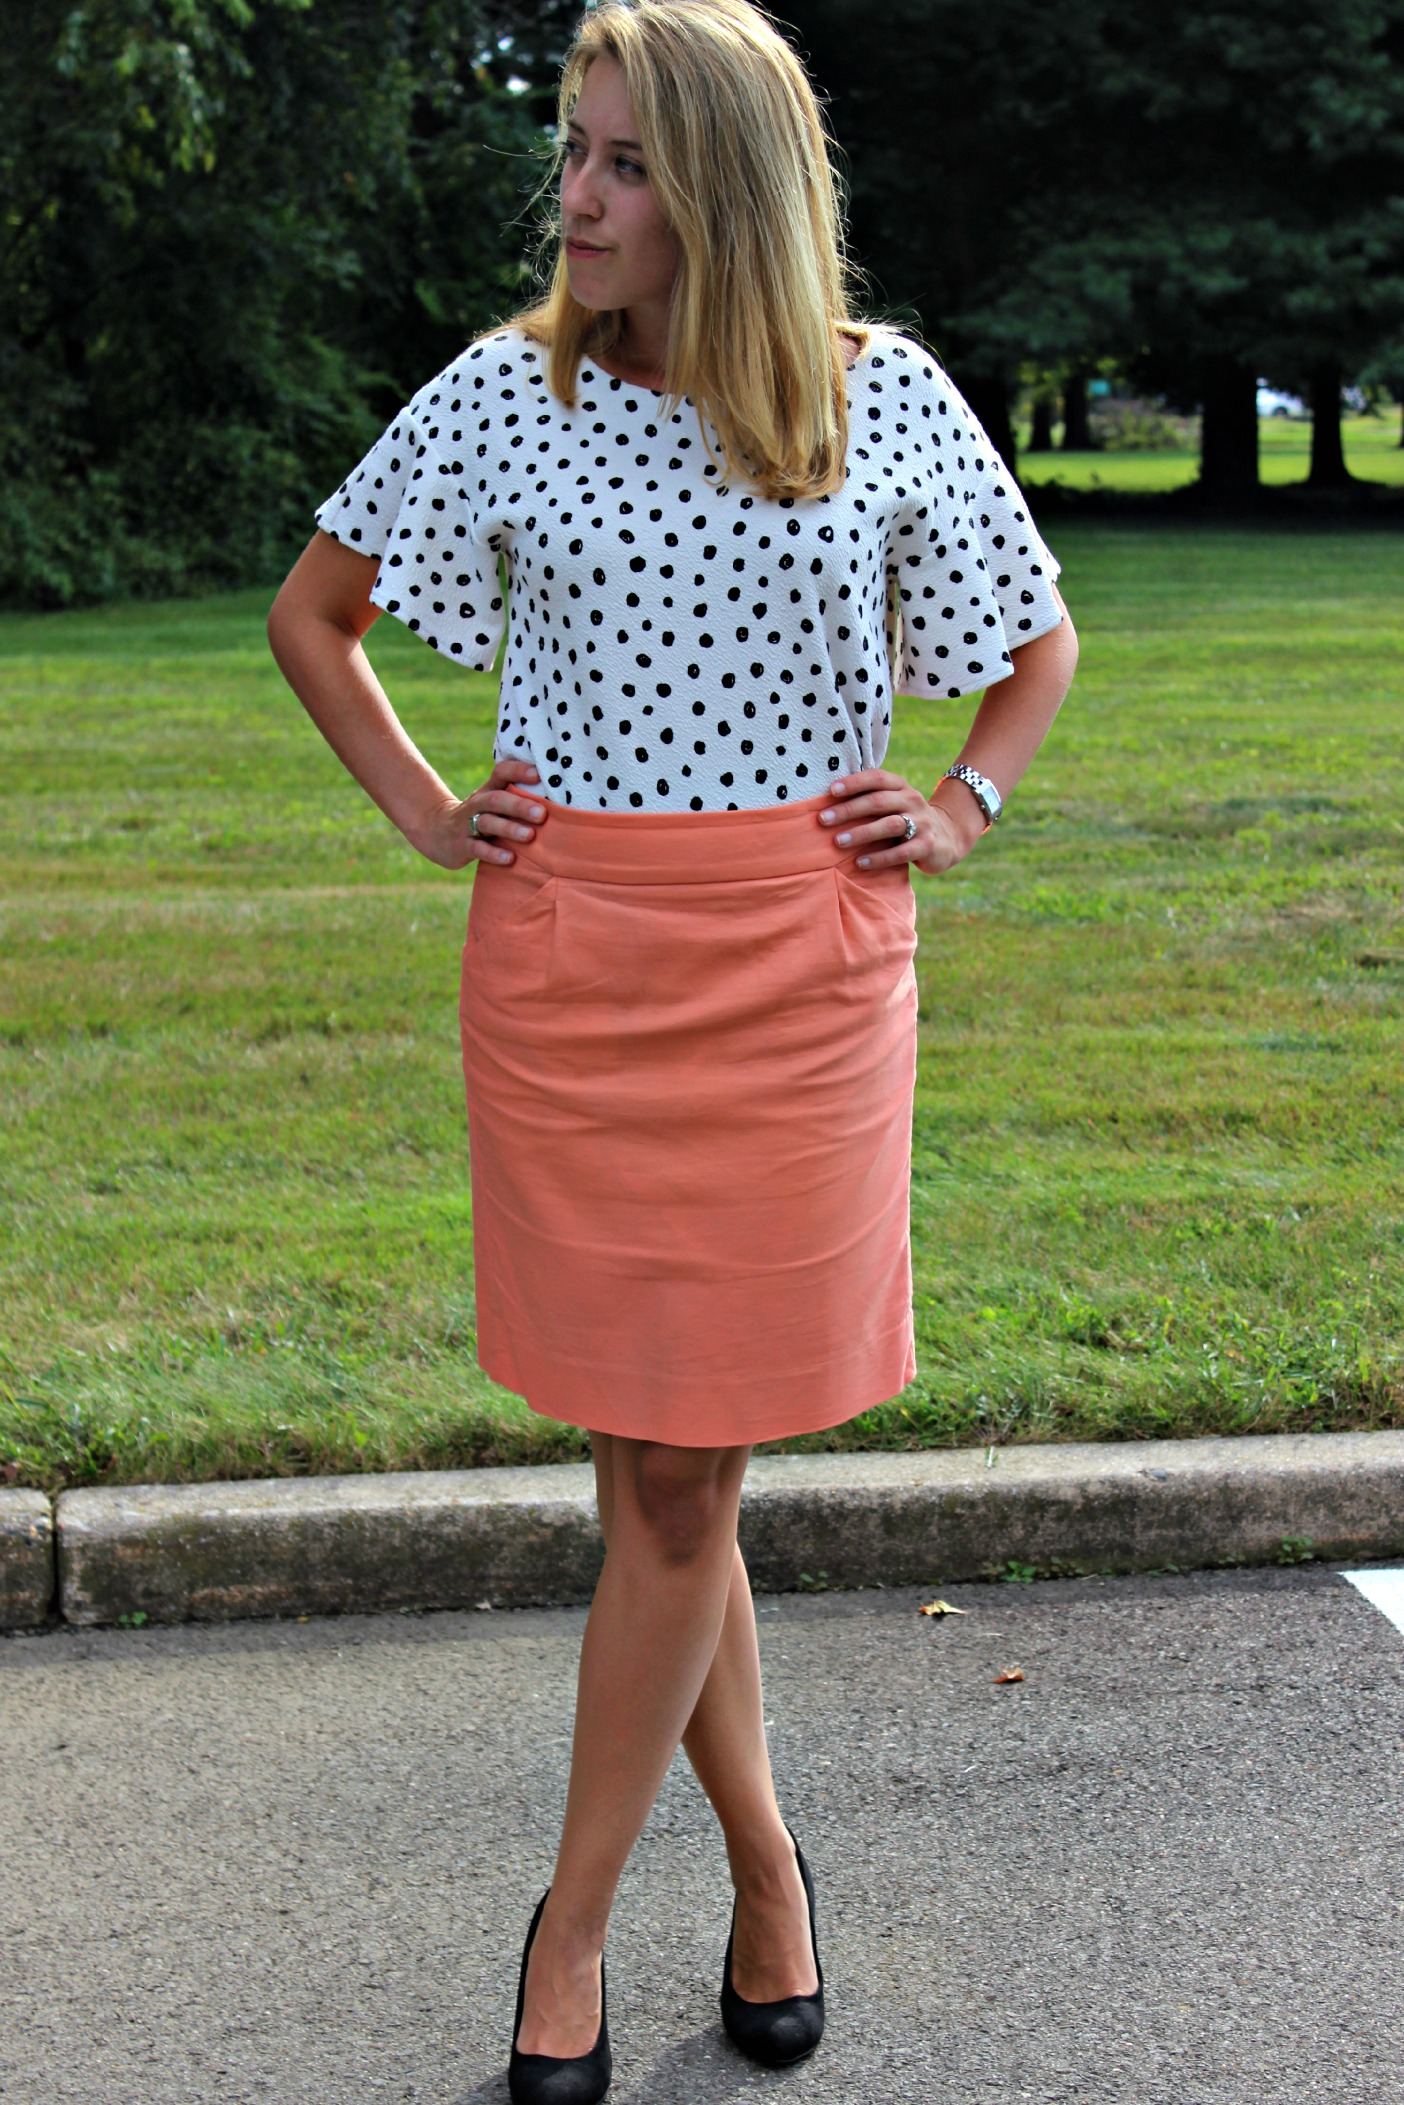 the polka-dotted professional